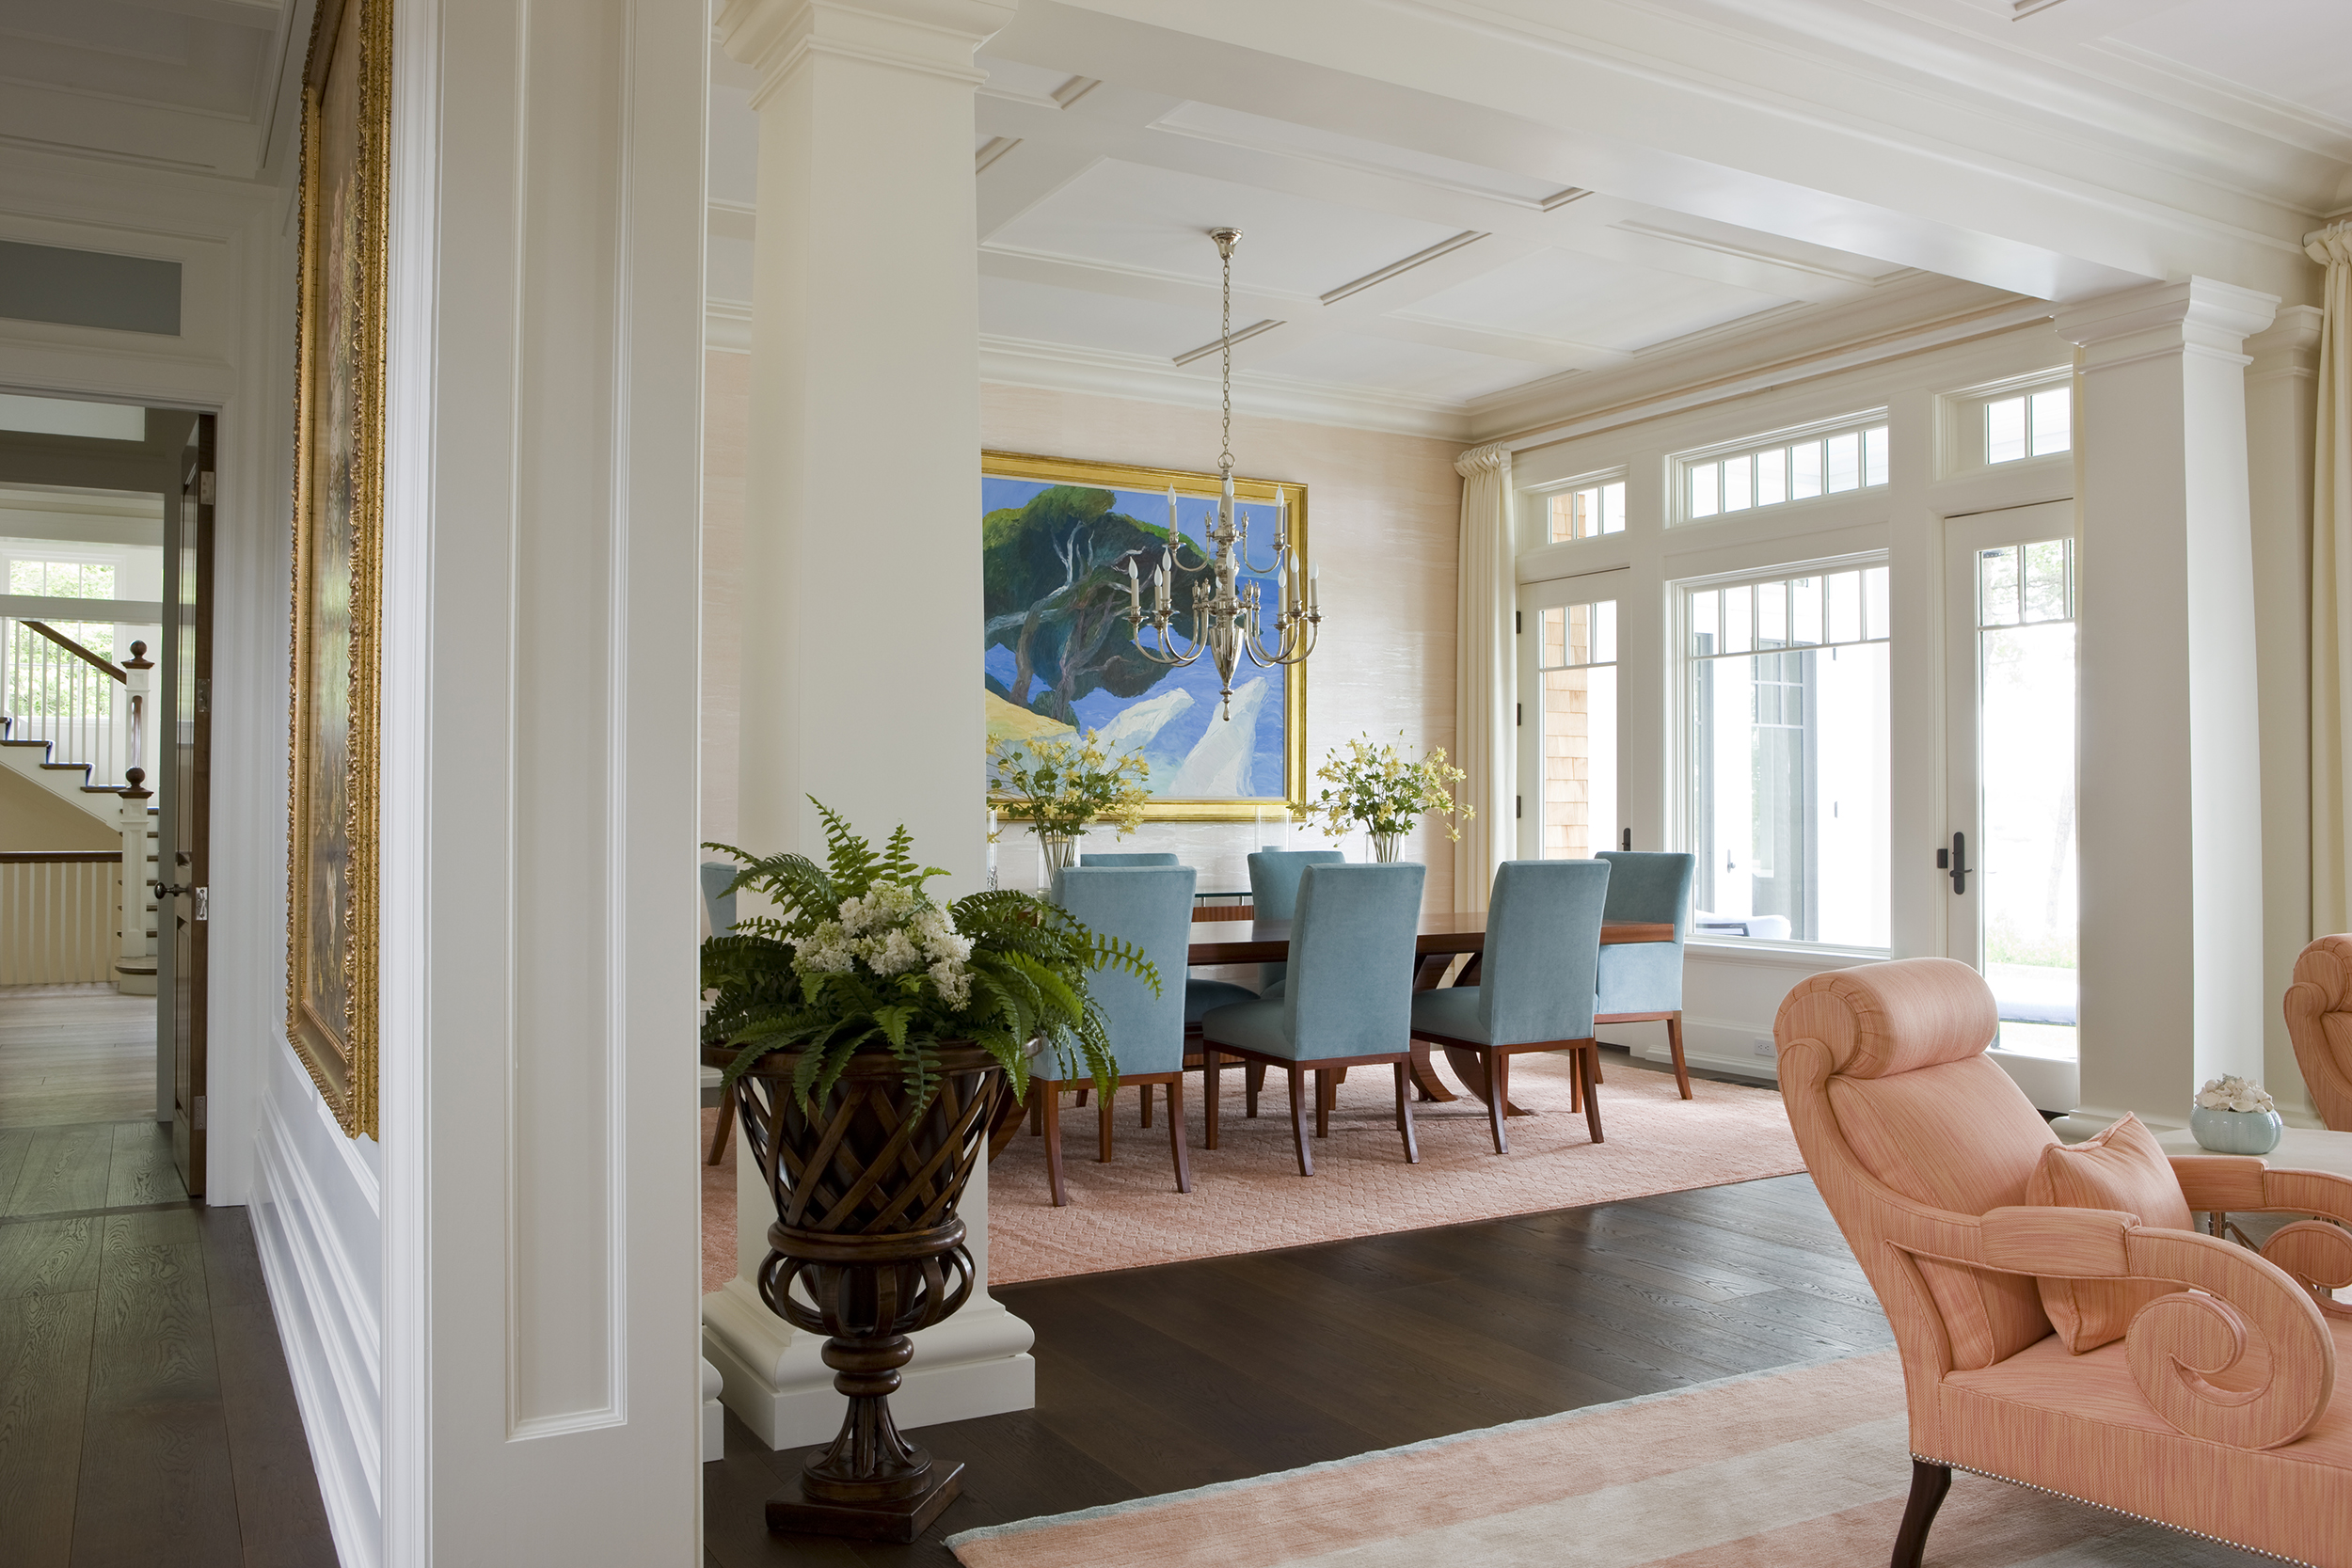 Another stunning room, the detail in this room is exquisite.